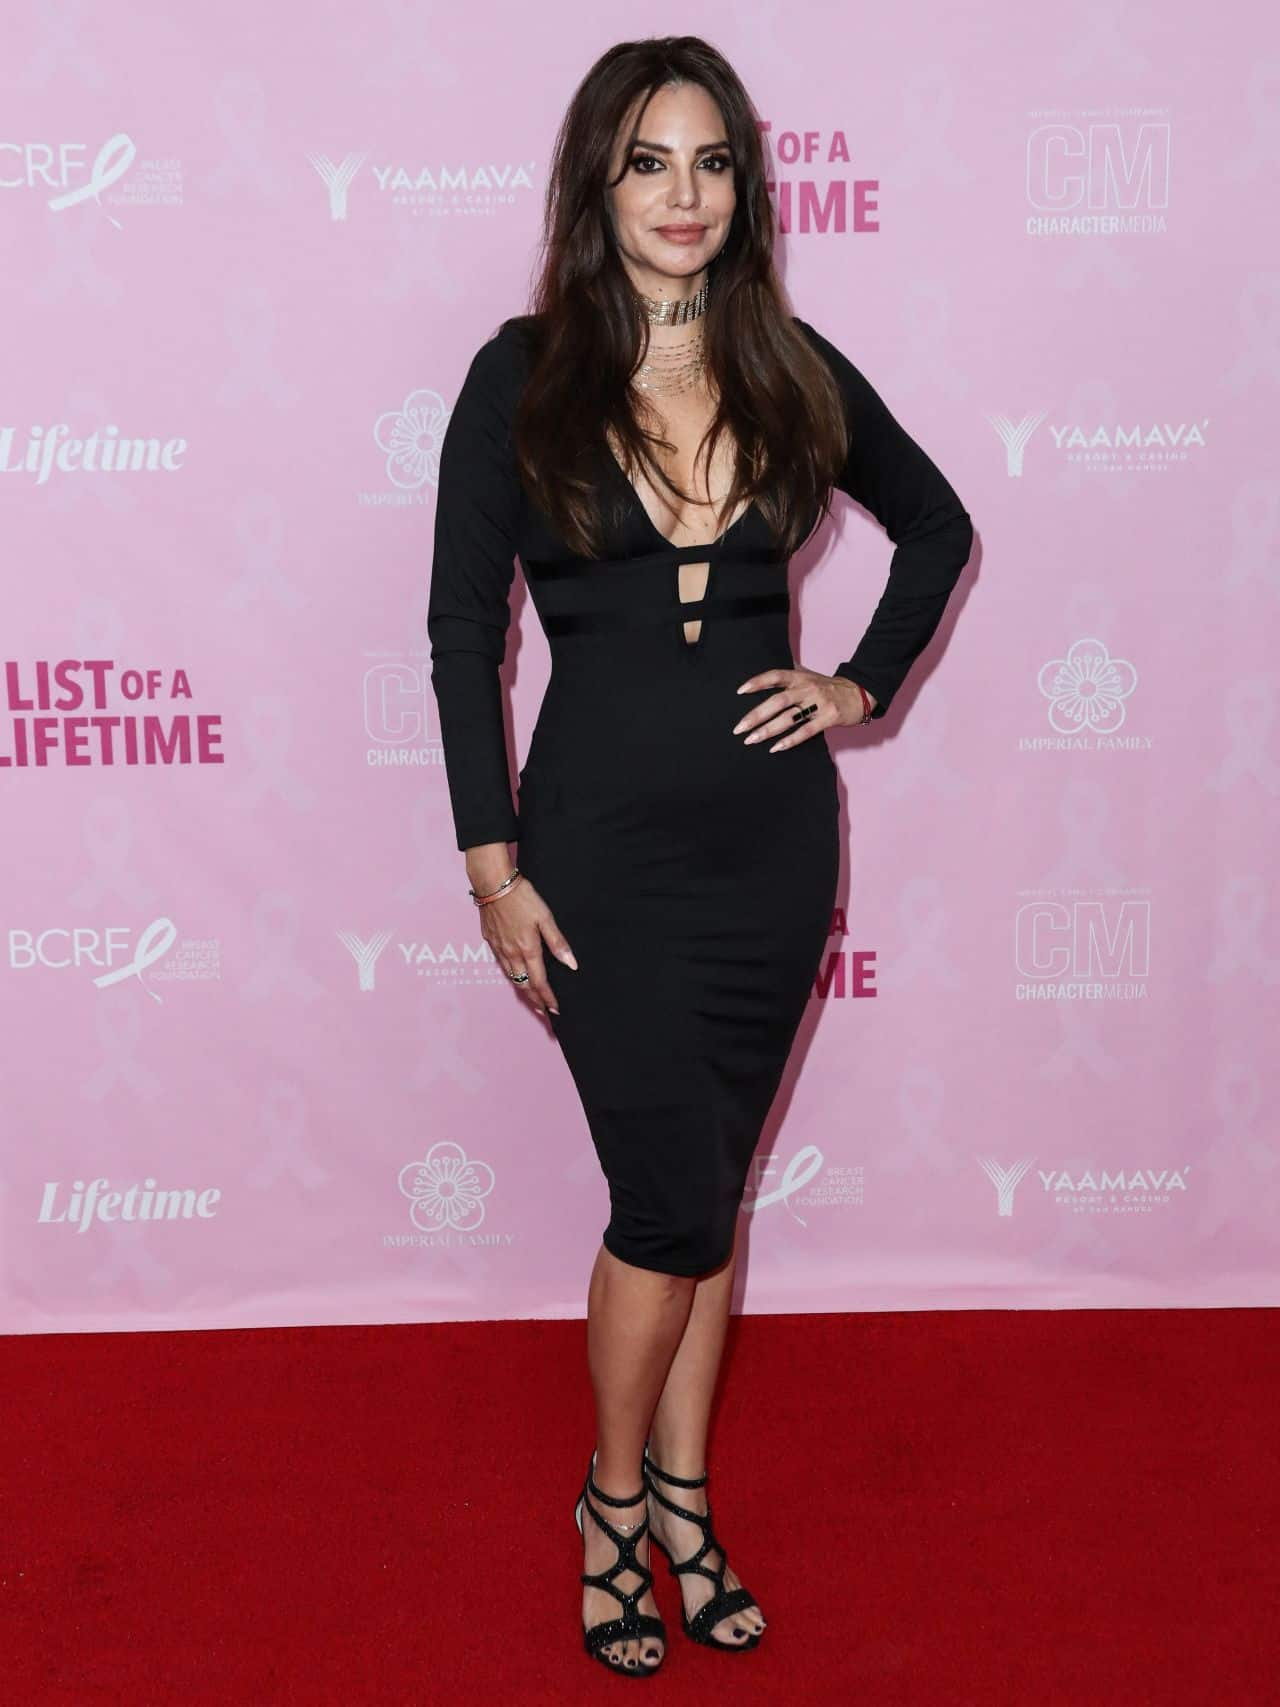 """Leticia Jimenez on the Red Carpet at the """"List Of A Lifetime"""" Premiere"""